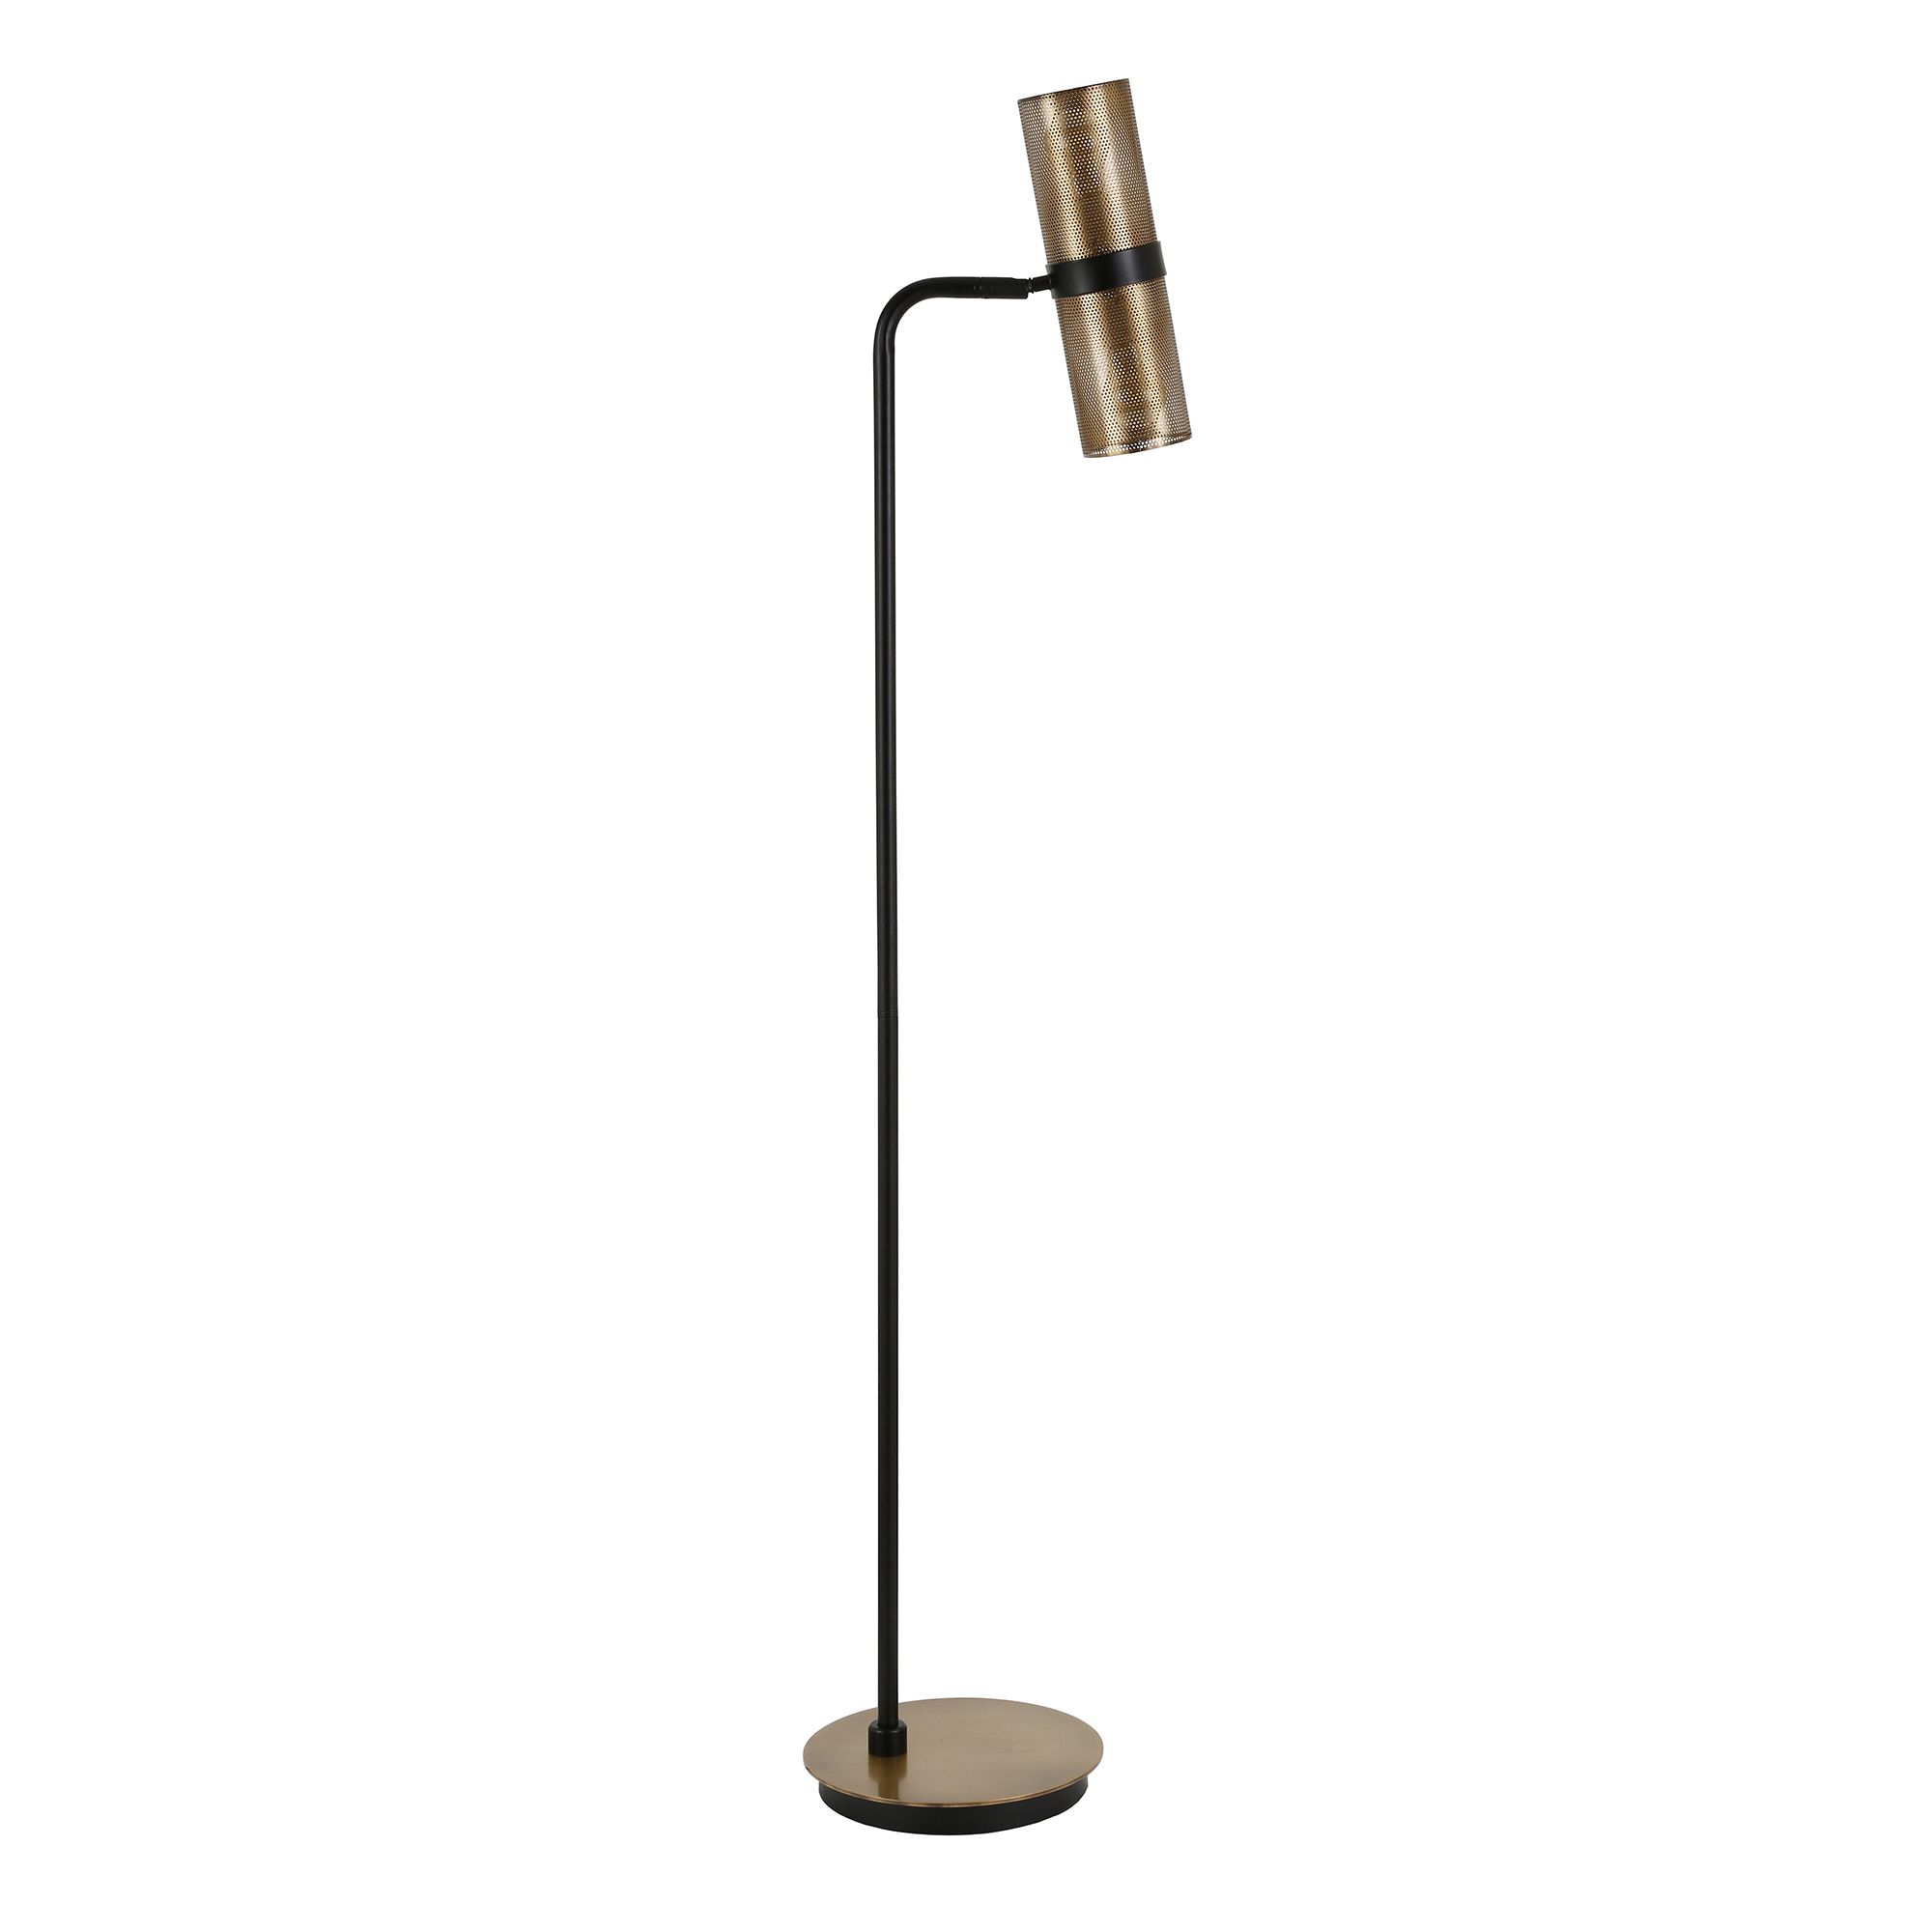 Modern, contemporary floor lamp in blackened bronze with brass